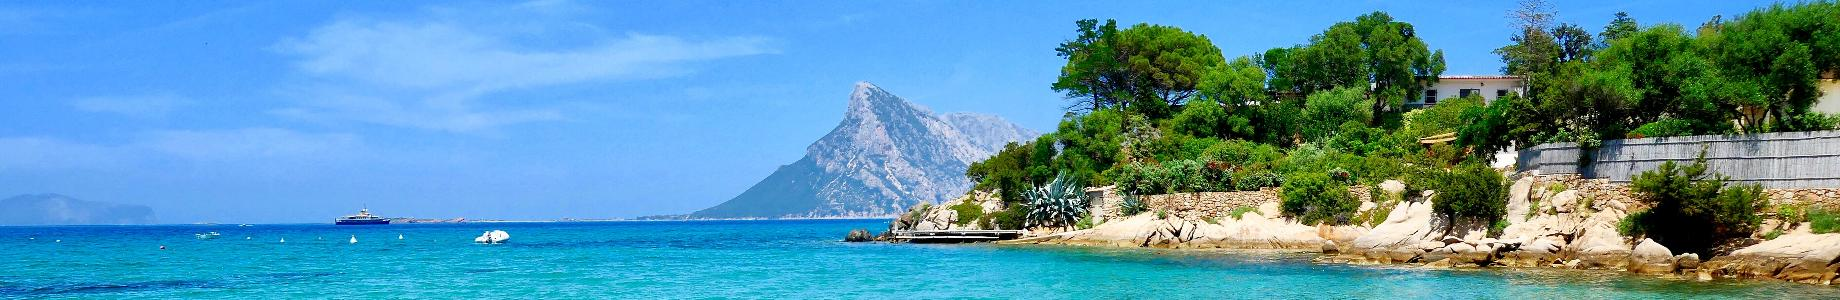 Main destinations in Italy for a yacht trip